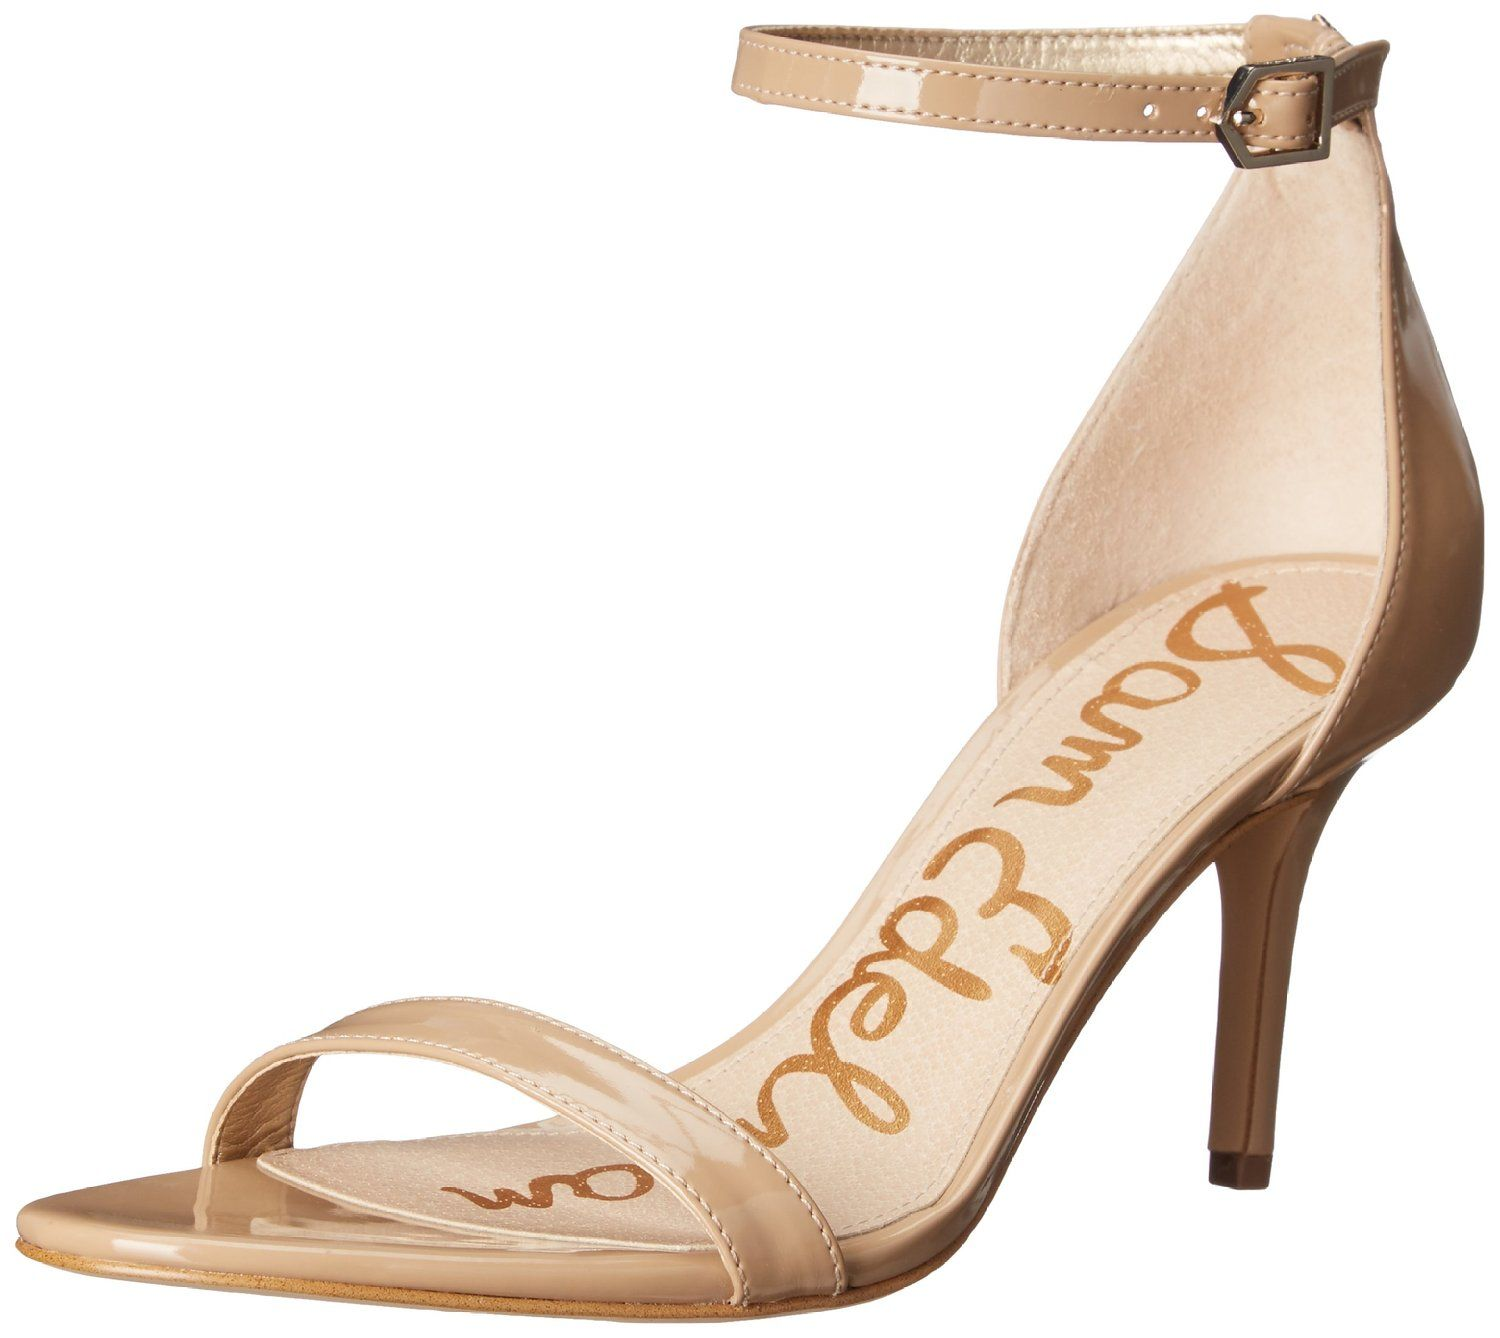 421774a75d79 Sam Edelman Women s Patti Dress Sandal   New and awesome product awaits  you